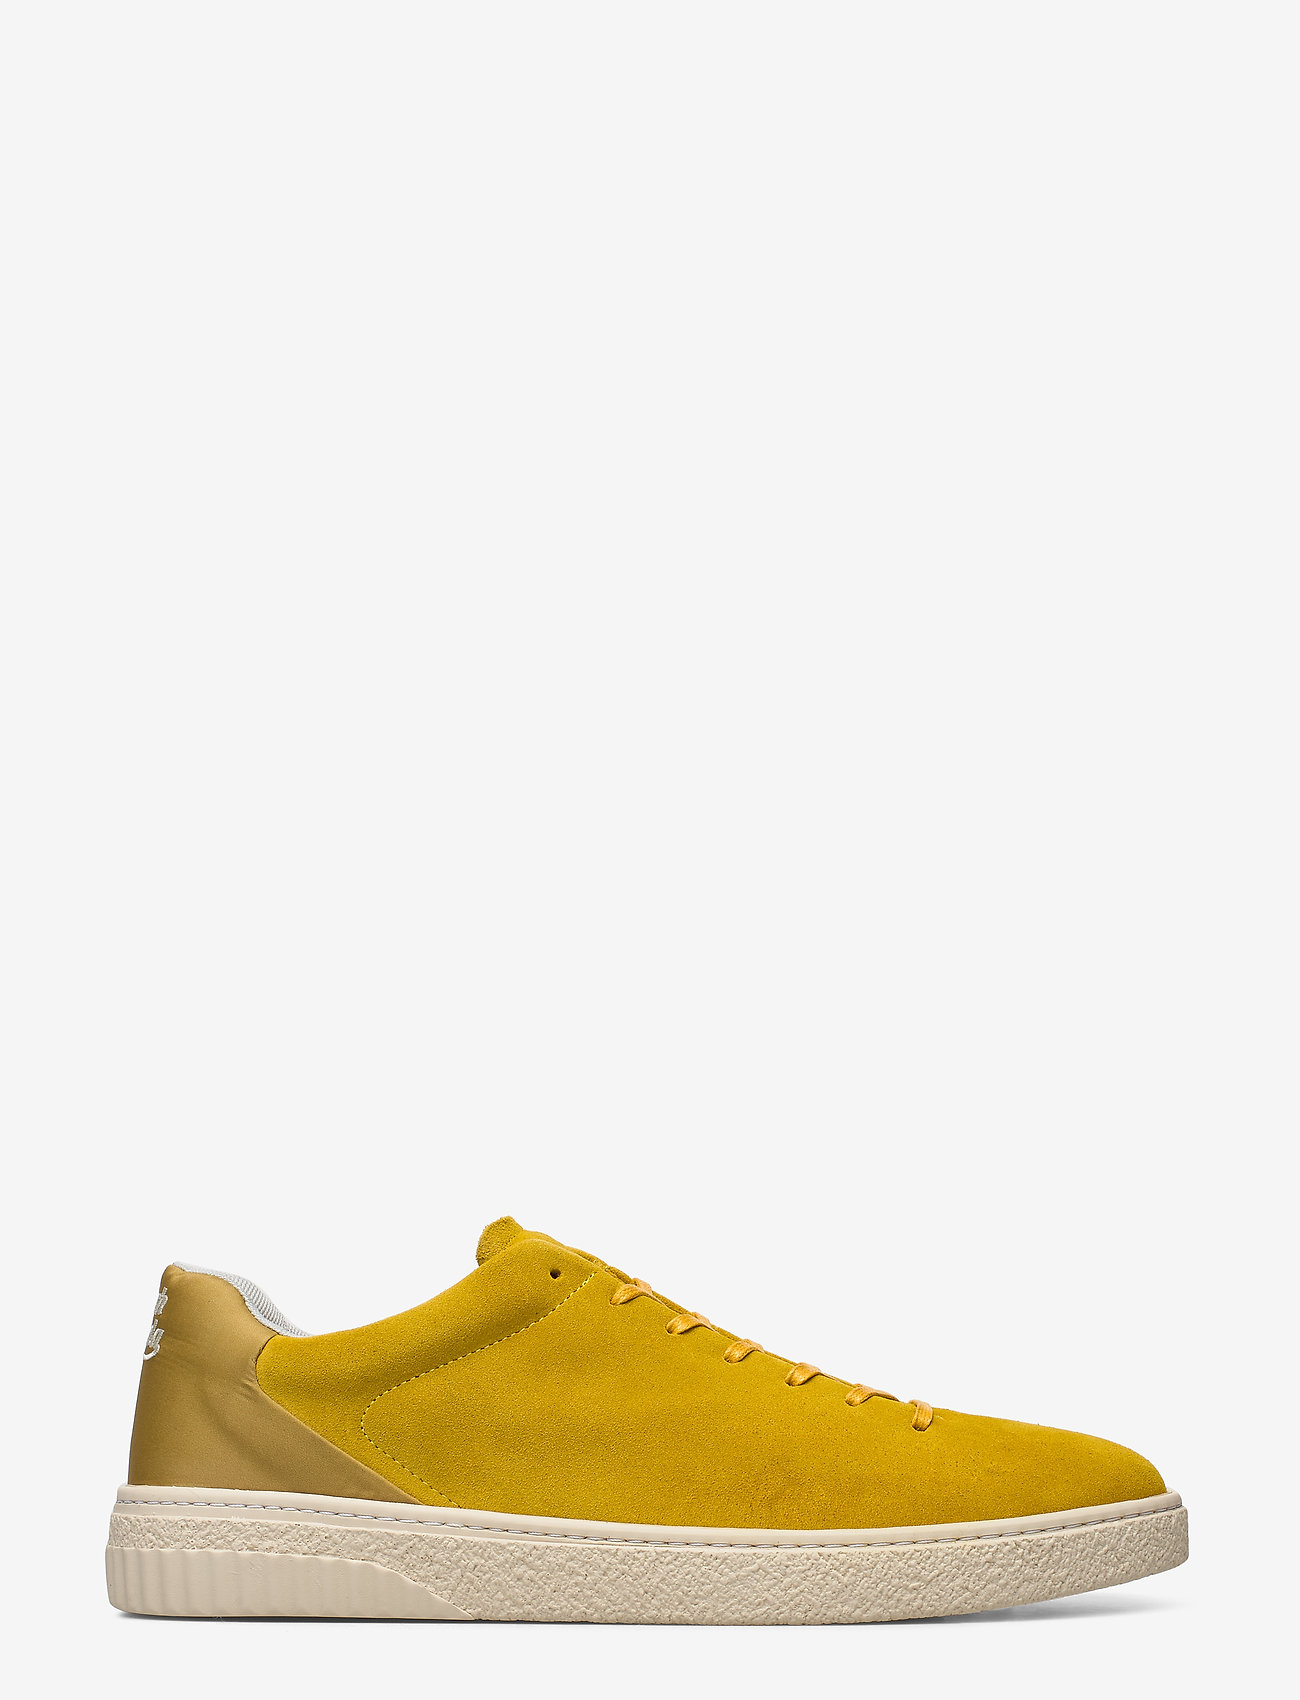 Scotch & Soda Shoes - Brilliant Sneaker - low tops - yellow - 1